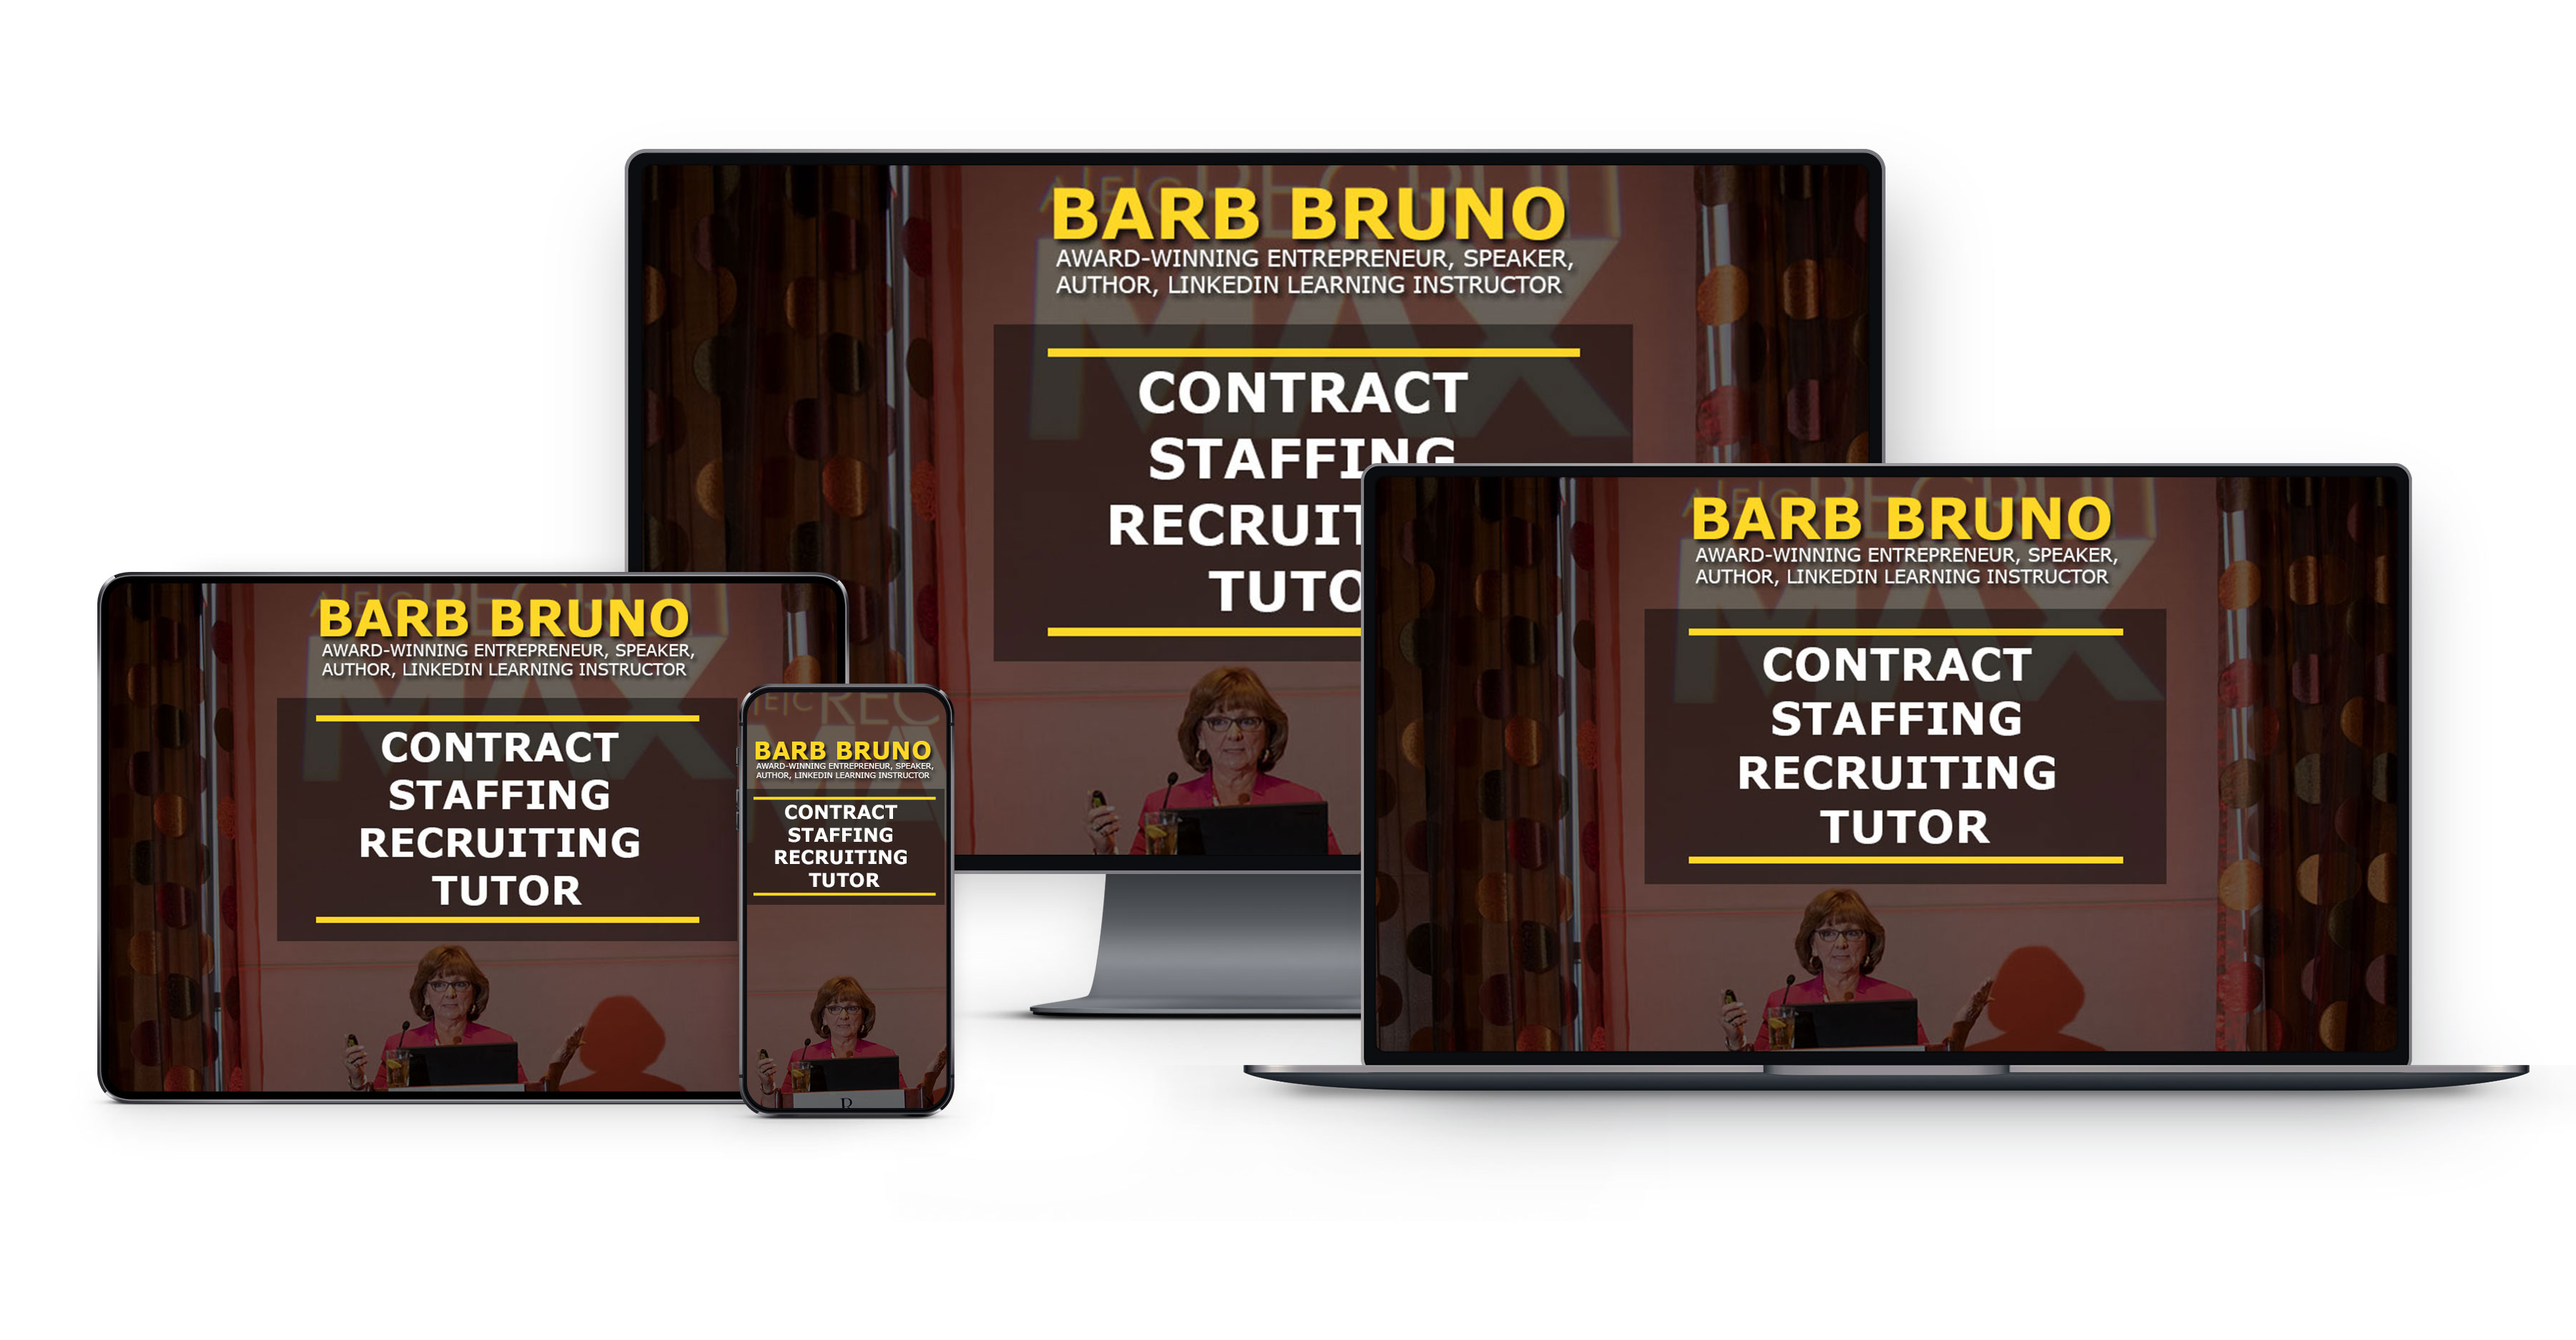 contract-staffing-recruiting-tutor